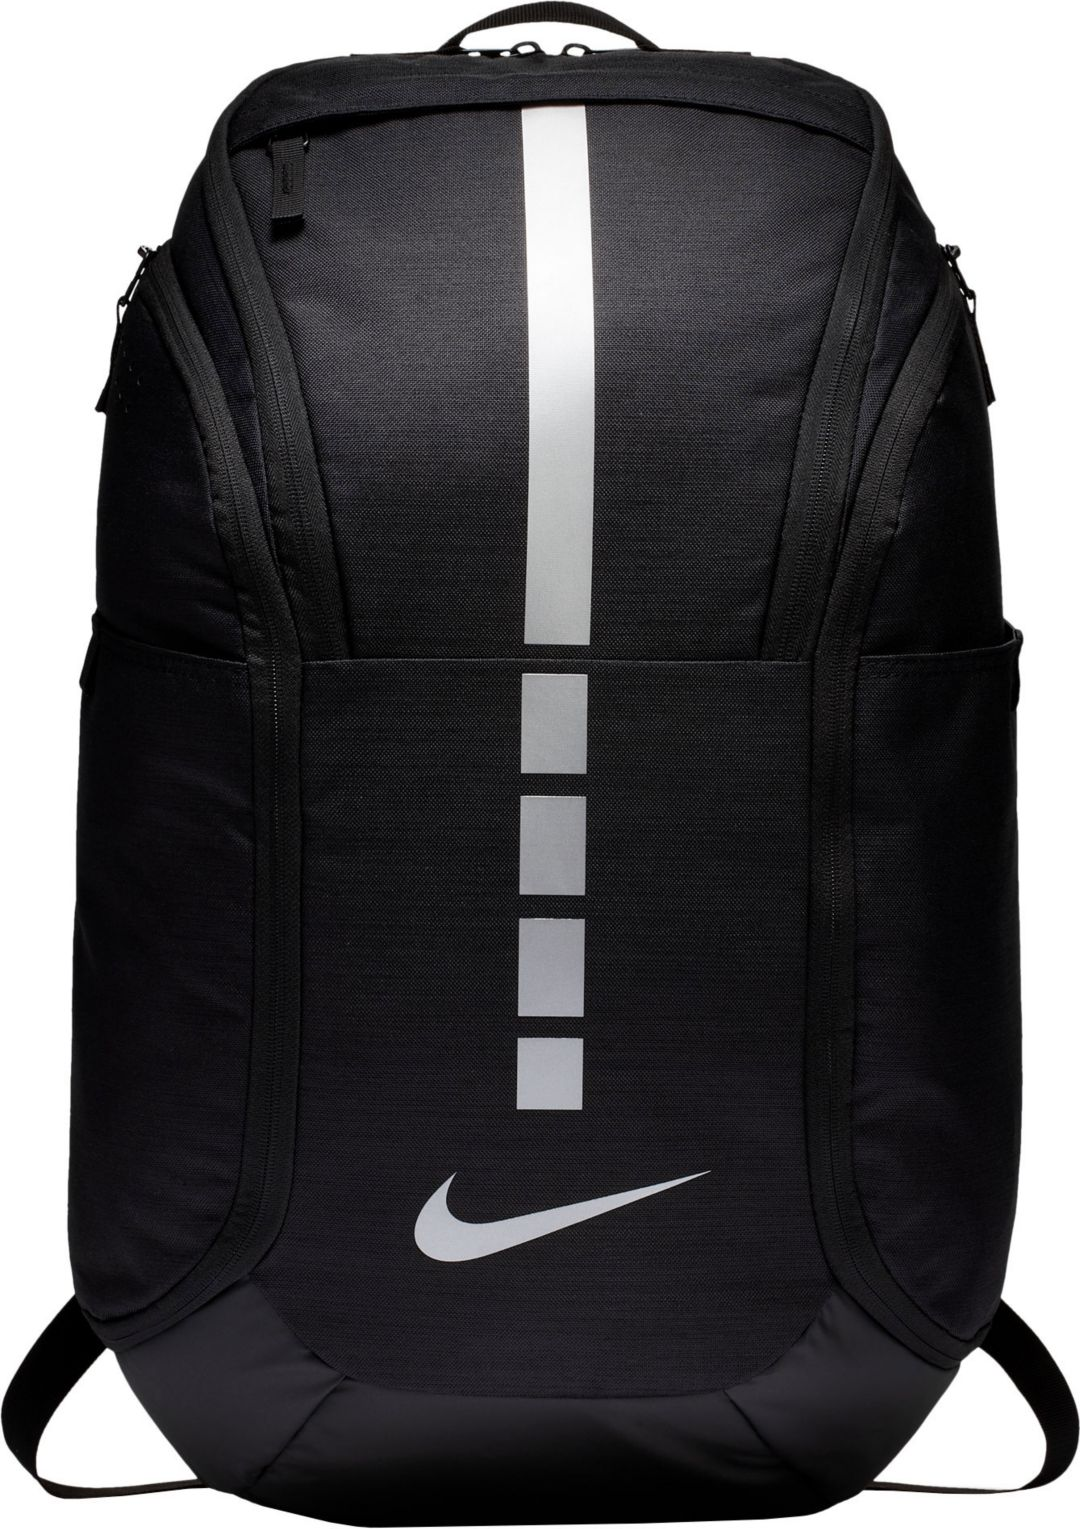 b5eac64d75a Nike Elite Pro Basketball Backpack | Best Price Guarantee at DICK'S